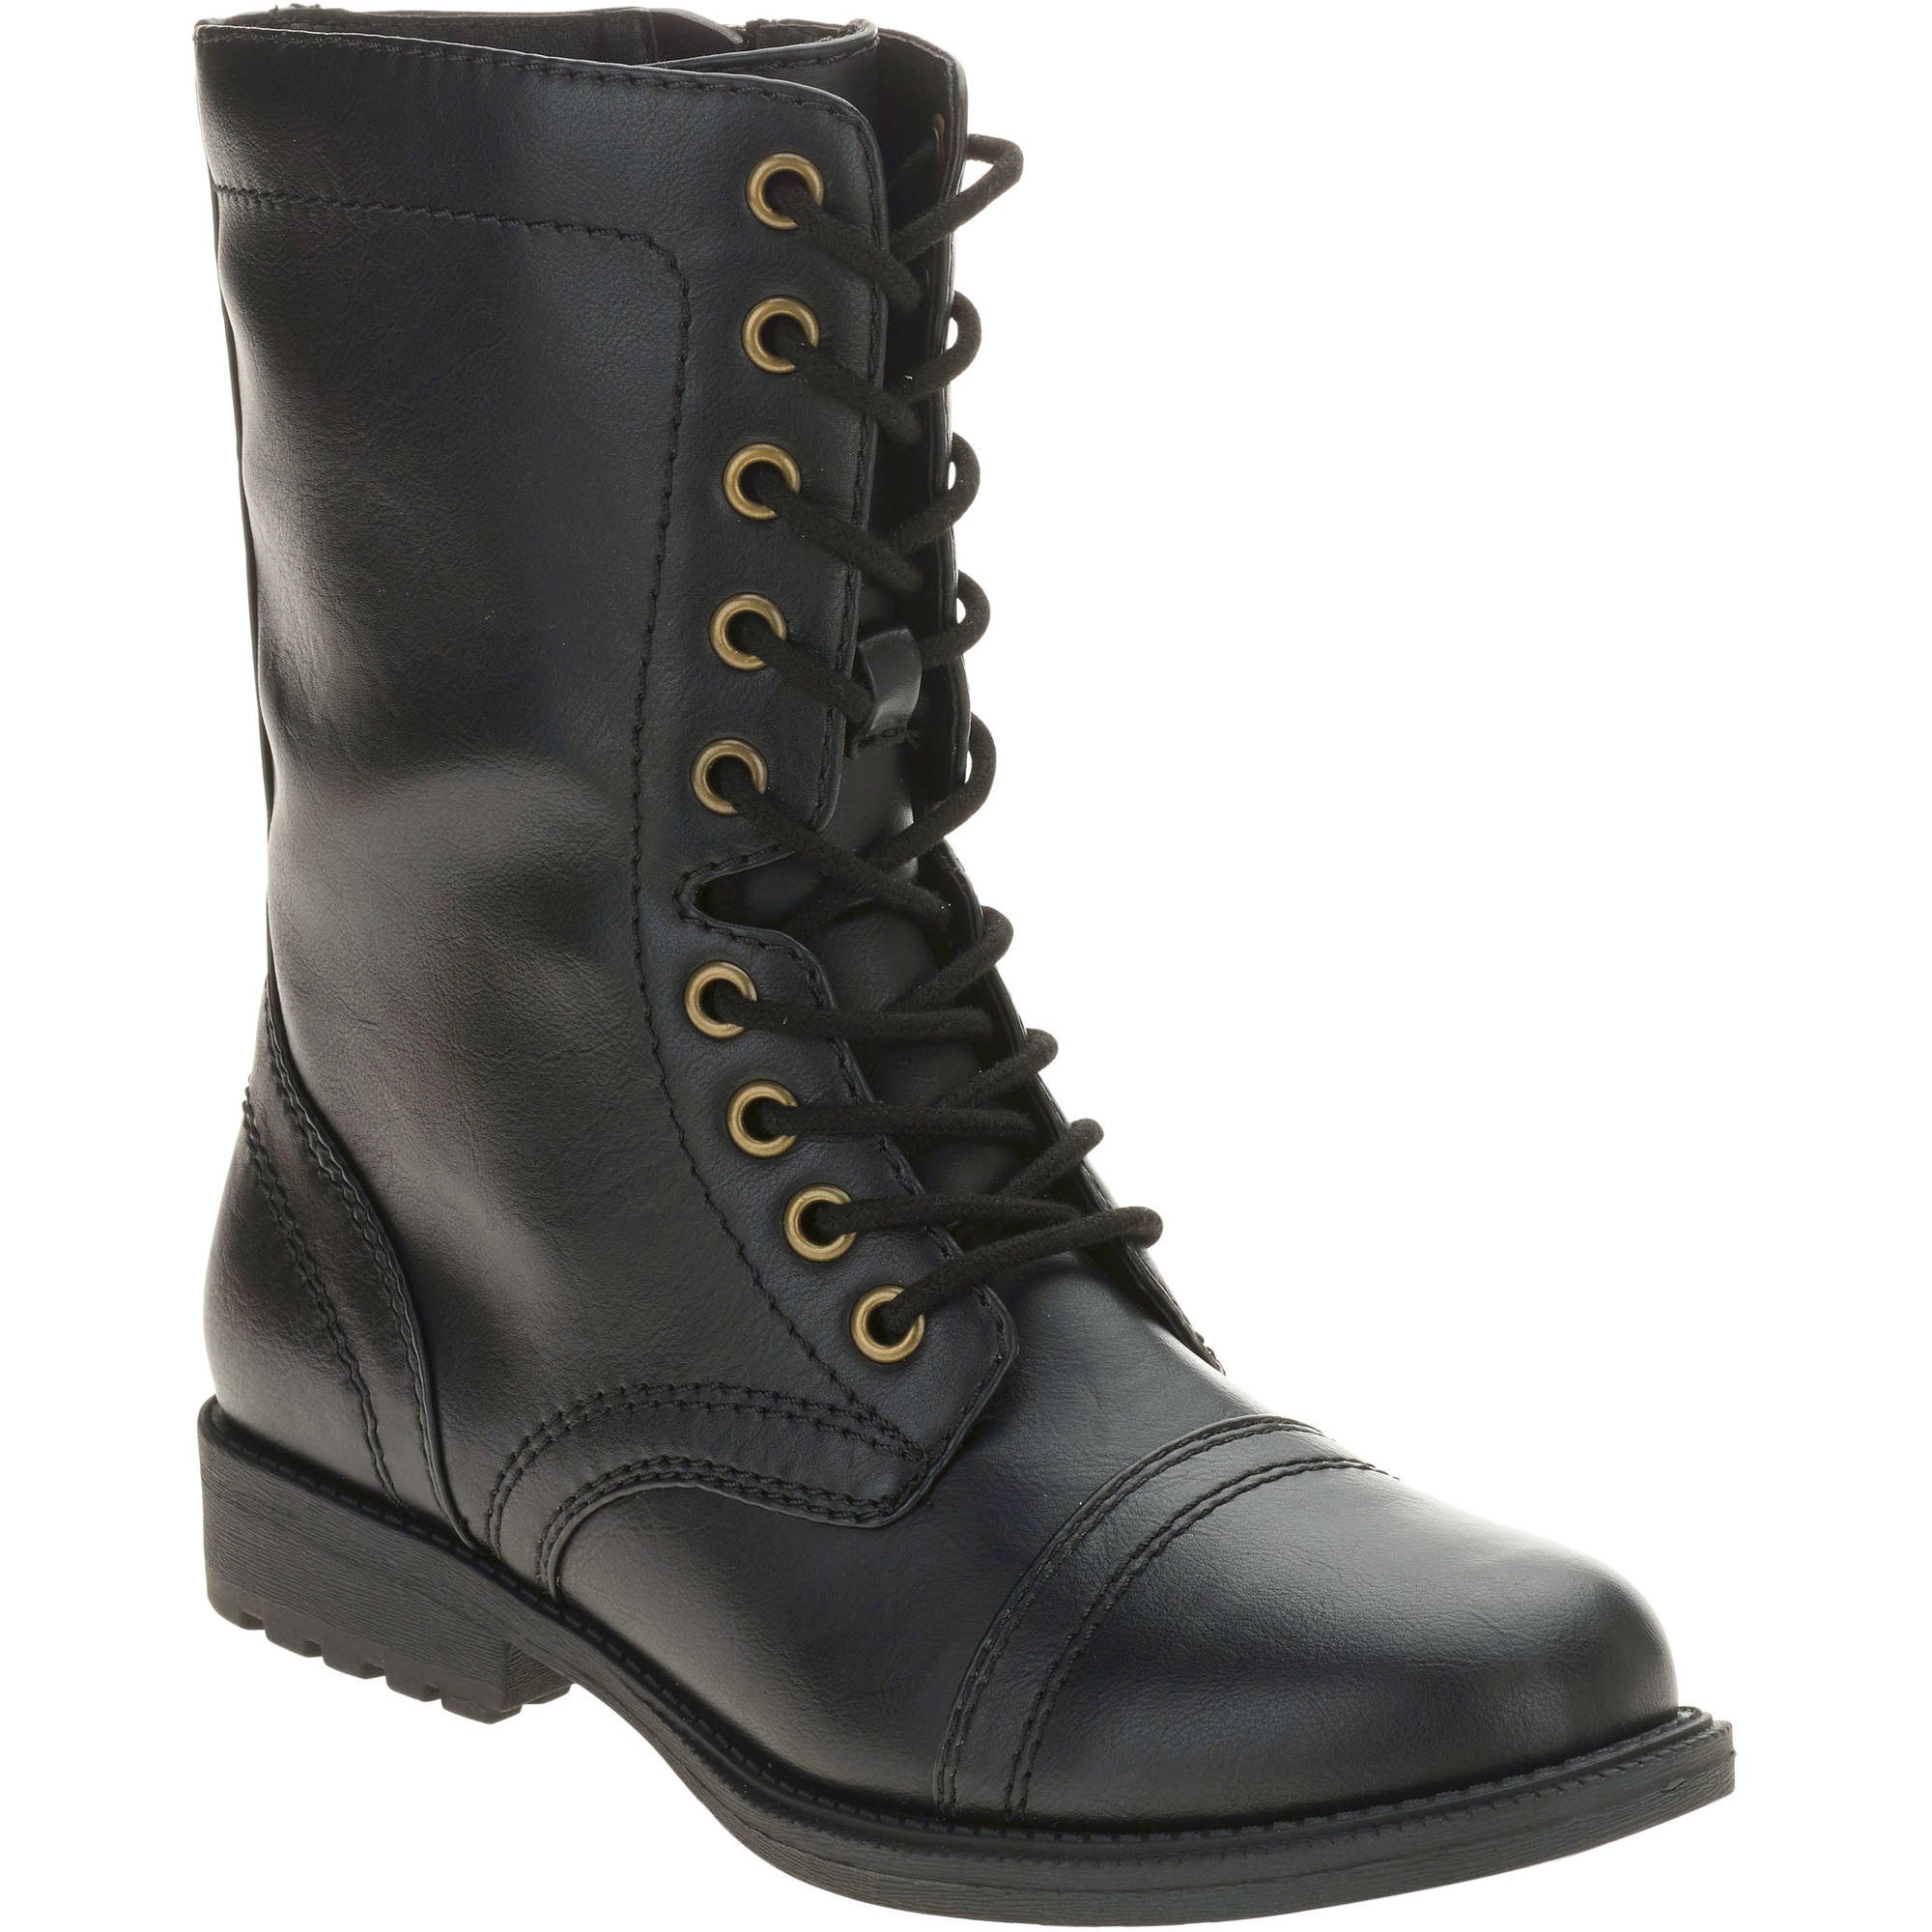 New Womens Combat Style Army Worker Military Ankle Boots Flat Punk Goth Shoes Size | EBay